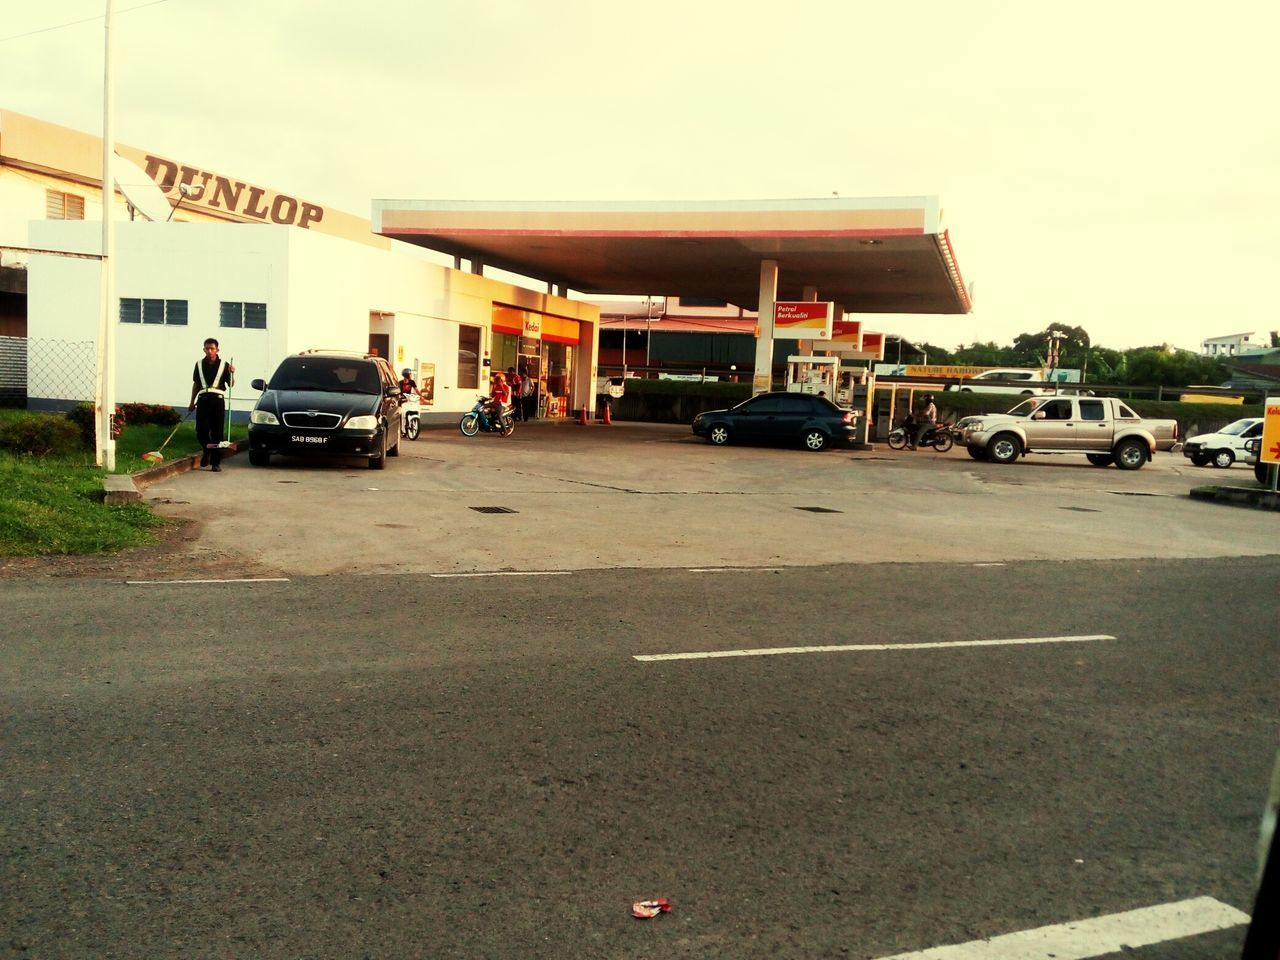 land vehicle, transportation, car, mode of transport, sky, outdoors, no people, day, fuel pump, gas station, architecture